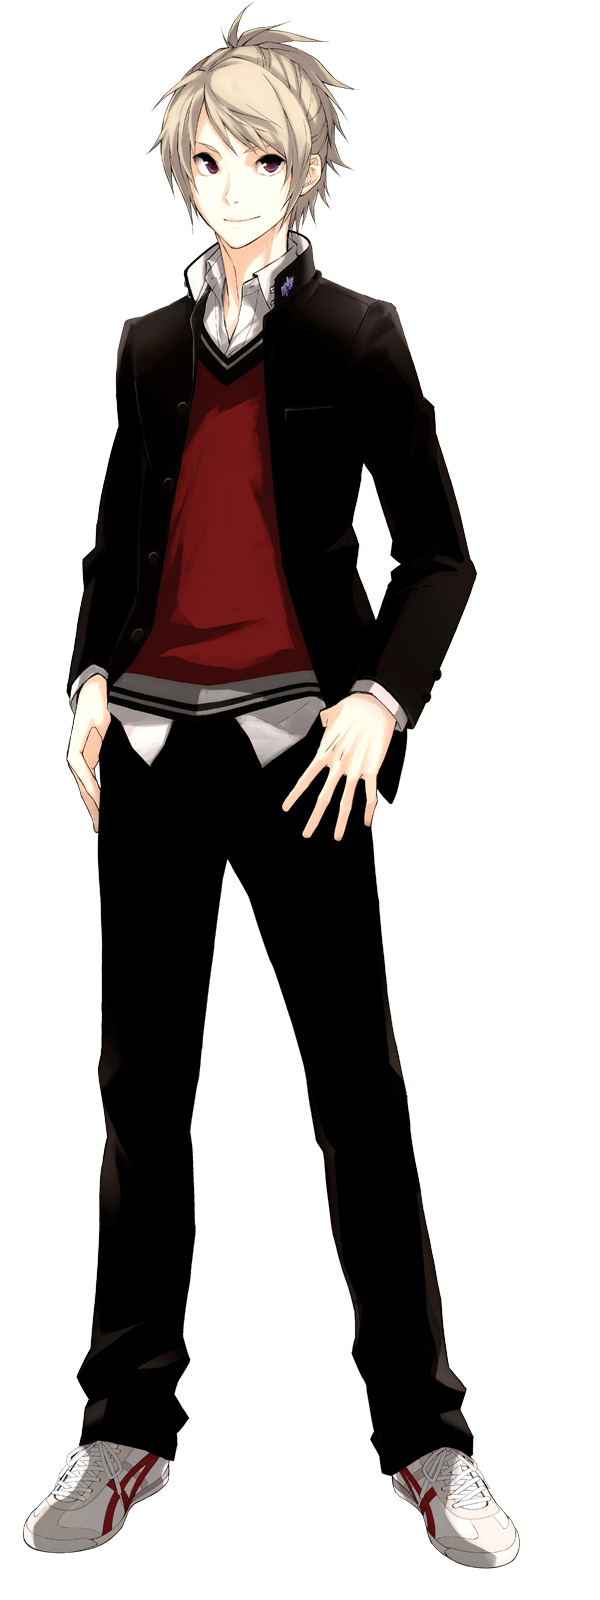 Tags: Anime, Nono Kanako, PRINCE OF STRIDE, Yagami Riku, PNG Conversion, Official Art